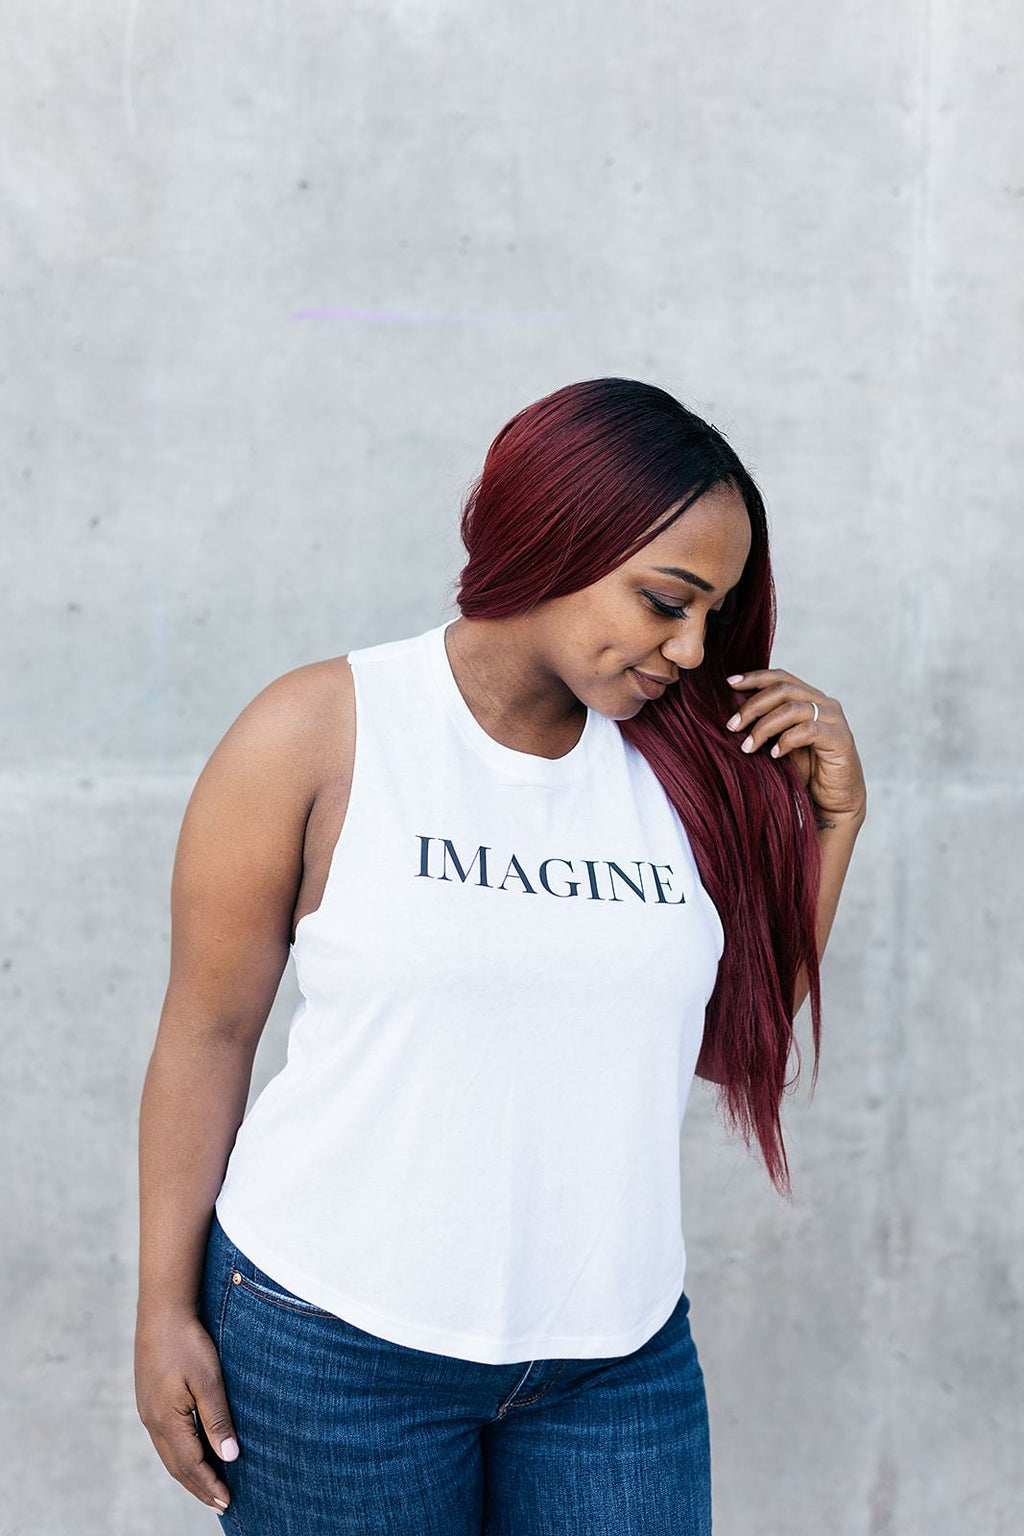 Imagine Crop Tank Top - everlur spiritual clothing